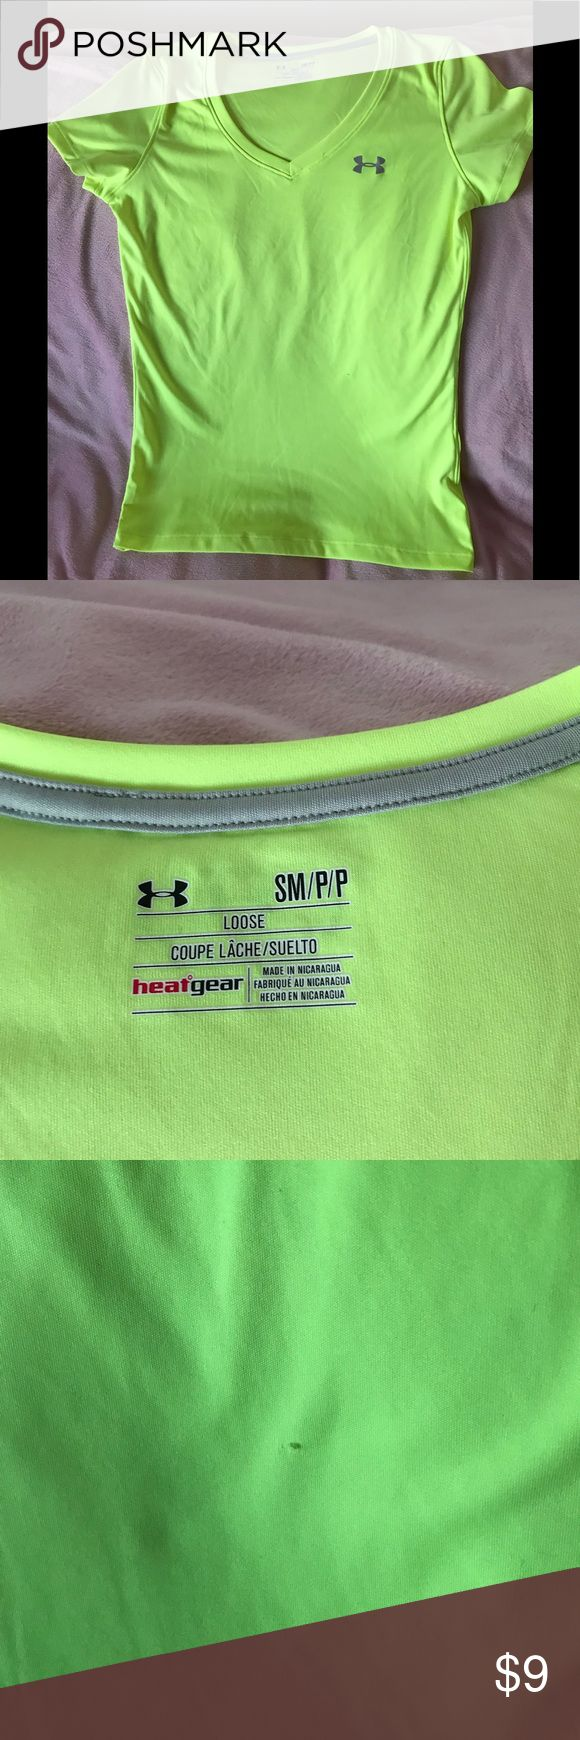 Under Armour shirt sleeve shirt Under Armour short sleeve v-neck shirt. Neon green color. EUC. Ladies size S. One small snag shown in photo. Under Armour Tops Tees - Short Sleeve